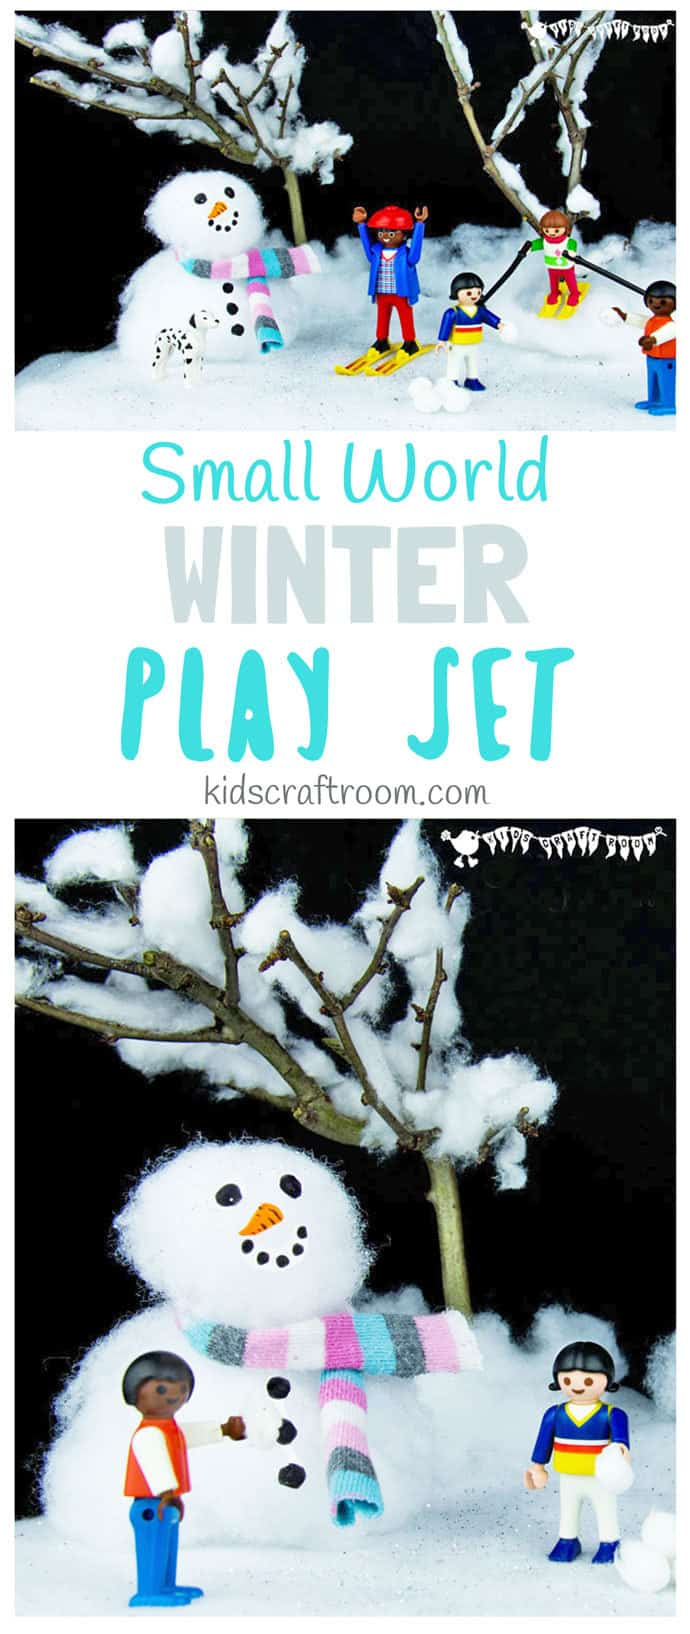 SMALL WORLD WINTER PLAY SET - Make an easy small world snow scene for kids to explore the fun and magic of Winter and snow again and again. A fun Winter craft for kids that encourages imaginative play. #Winter #snow #wintercrafts #wintercraftsforkids #wintercraftideas #winteractivities #smallworld #play #playideas #kidscraftroom